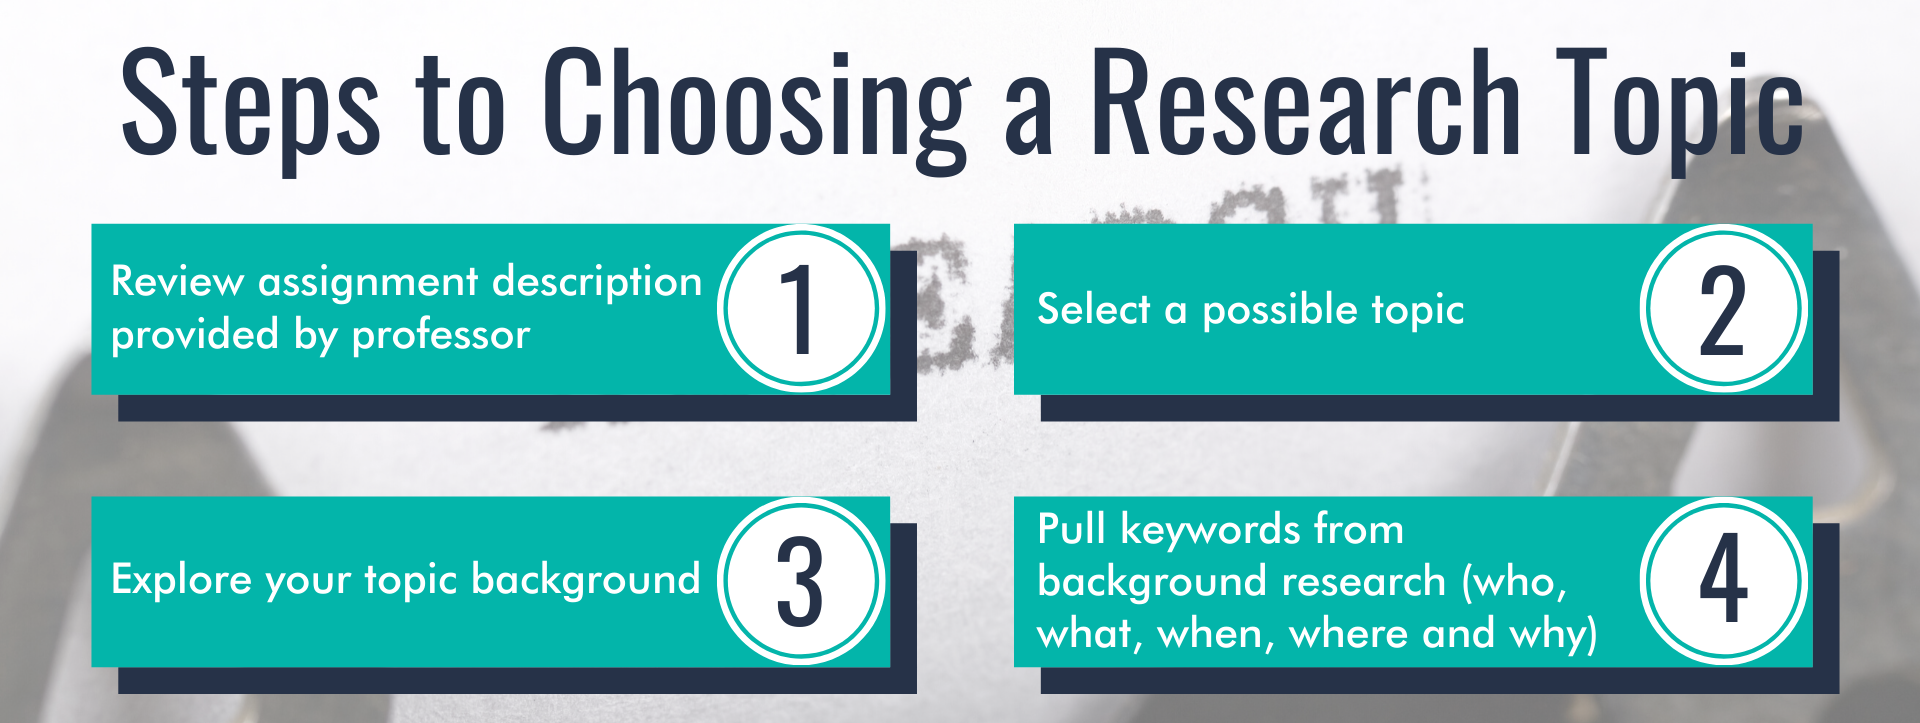 Diagram of the steps to choosing a research topic.